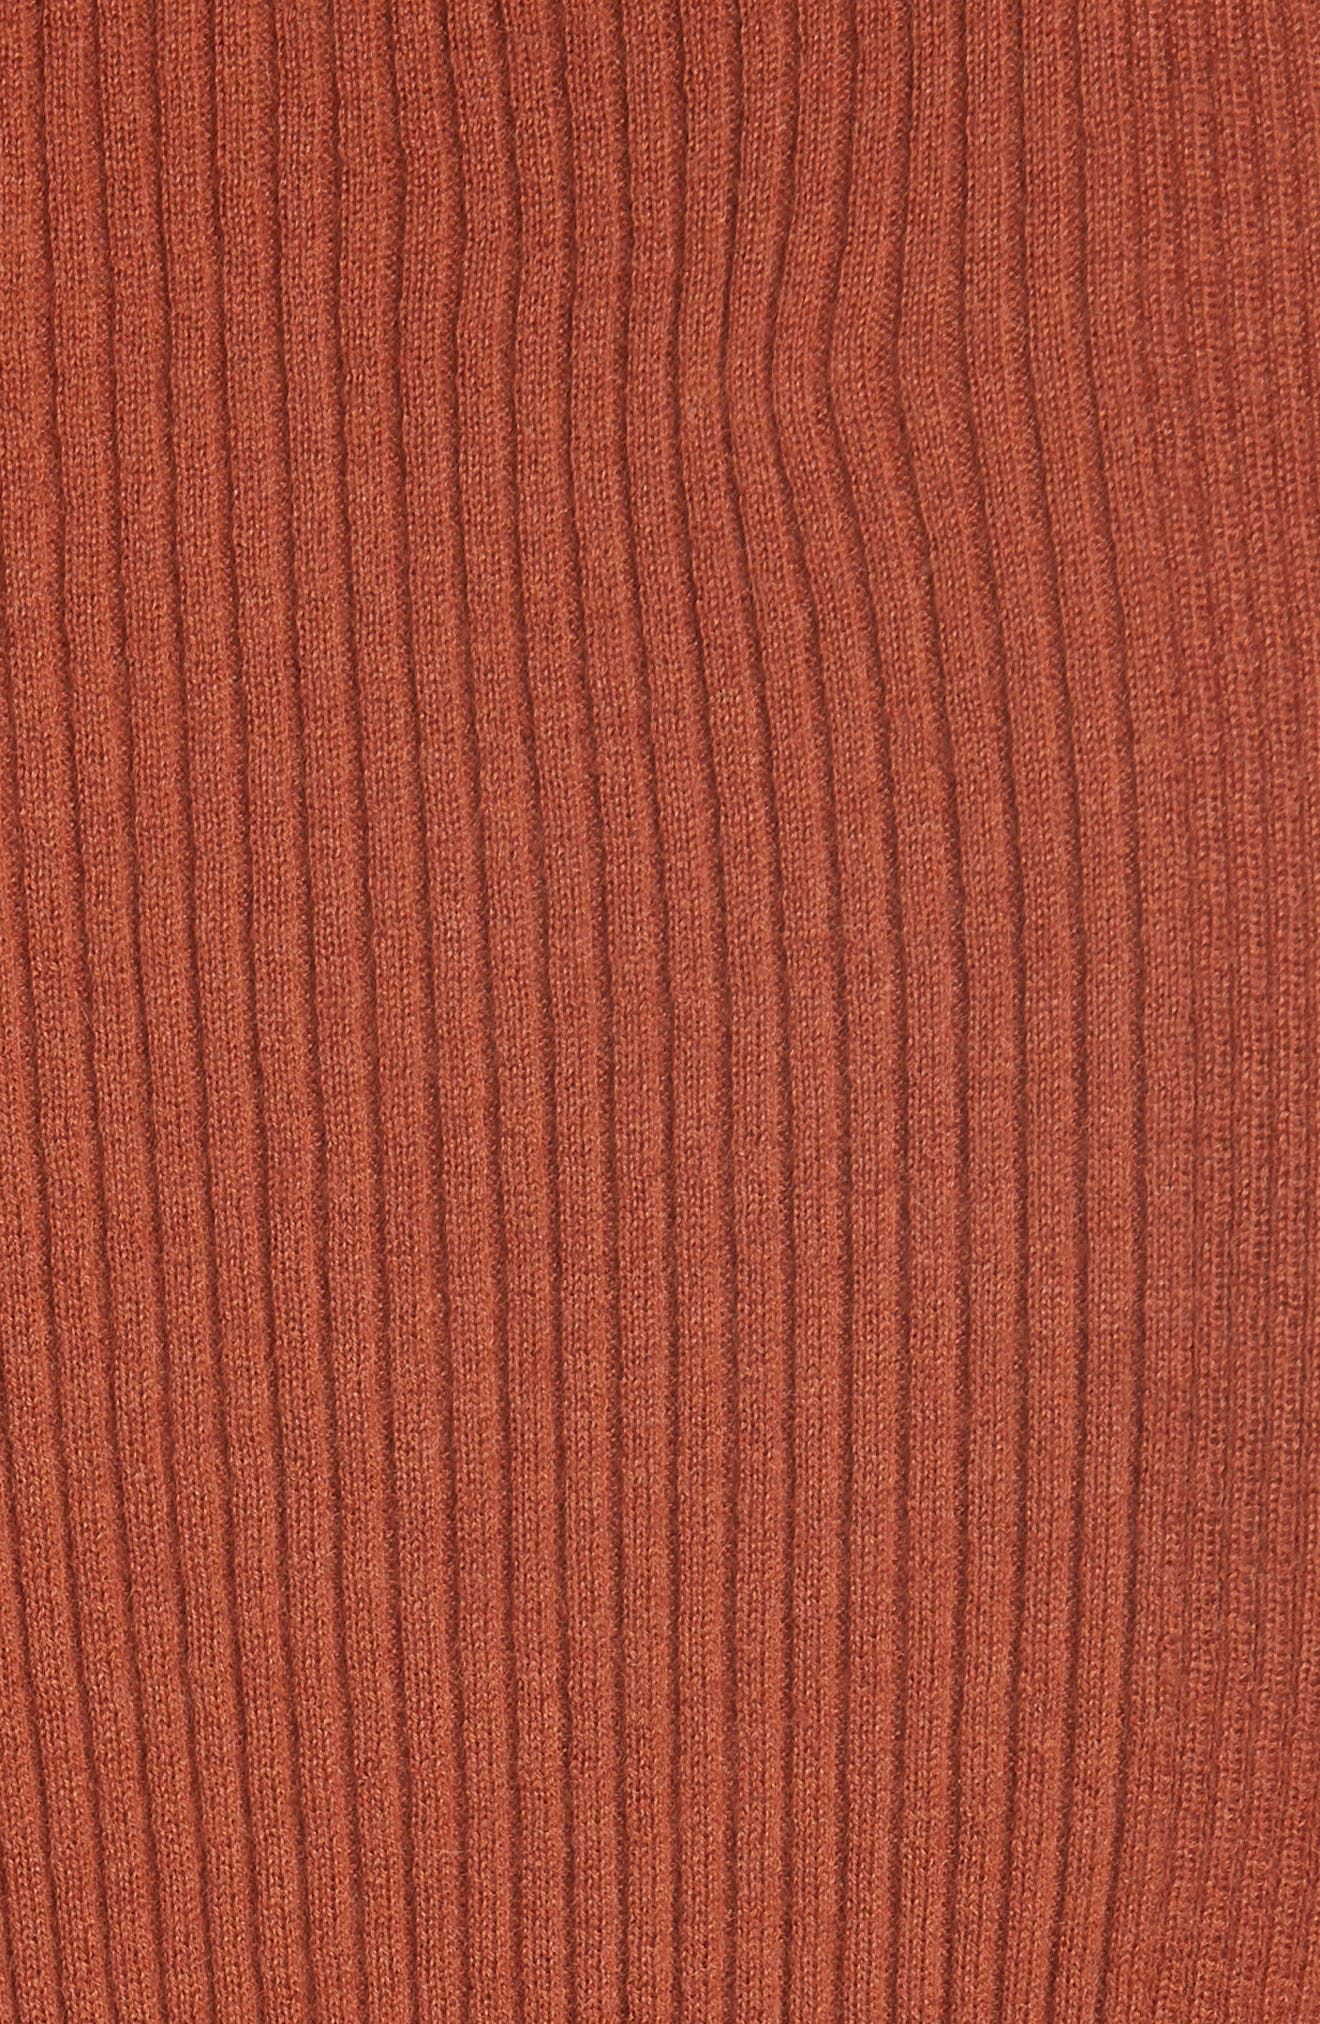 Taylor Ribbed Cashmere Sweater,                             Alternate thumbnail 5, color,                             217